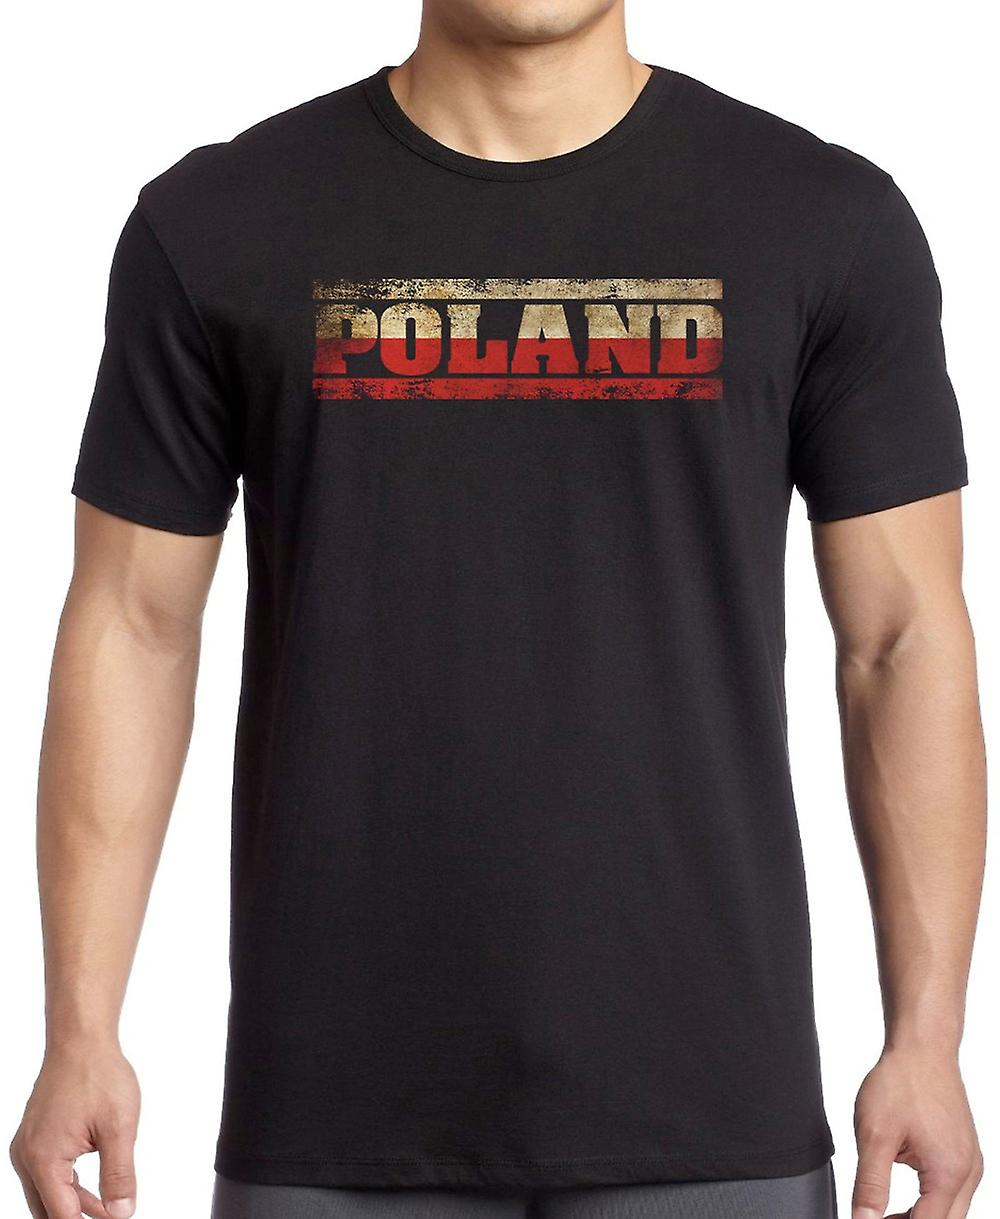 Polen Pools Flag - woorden T Shirt